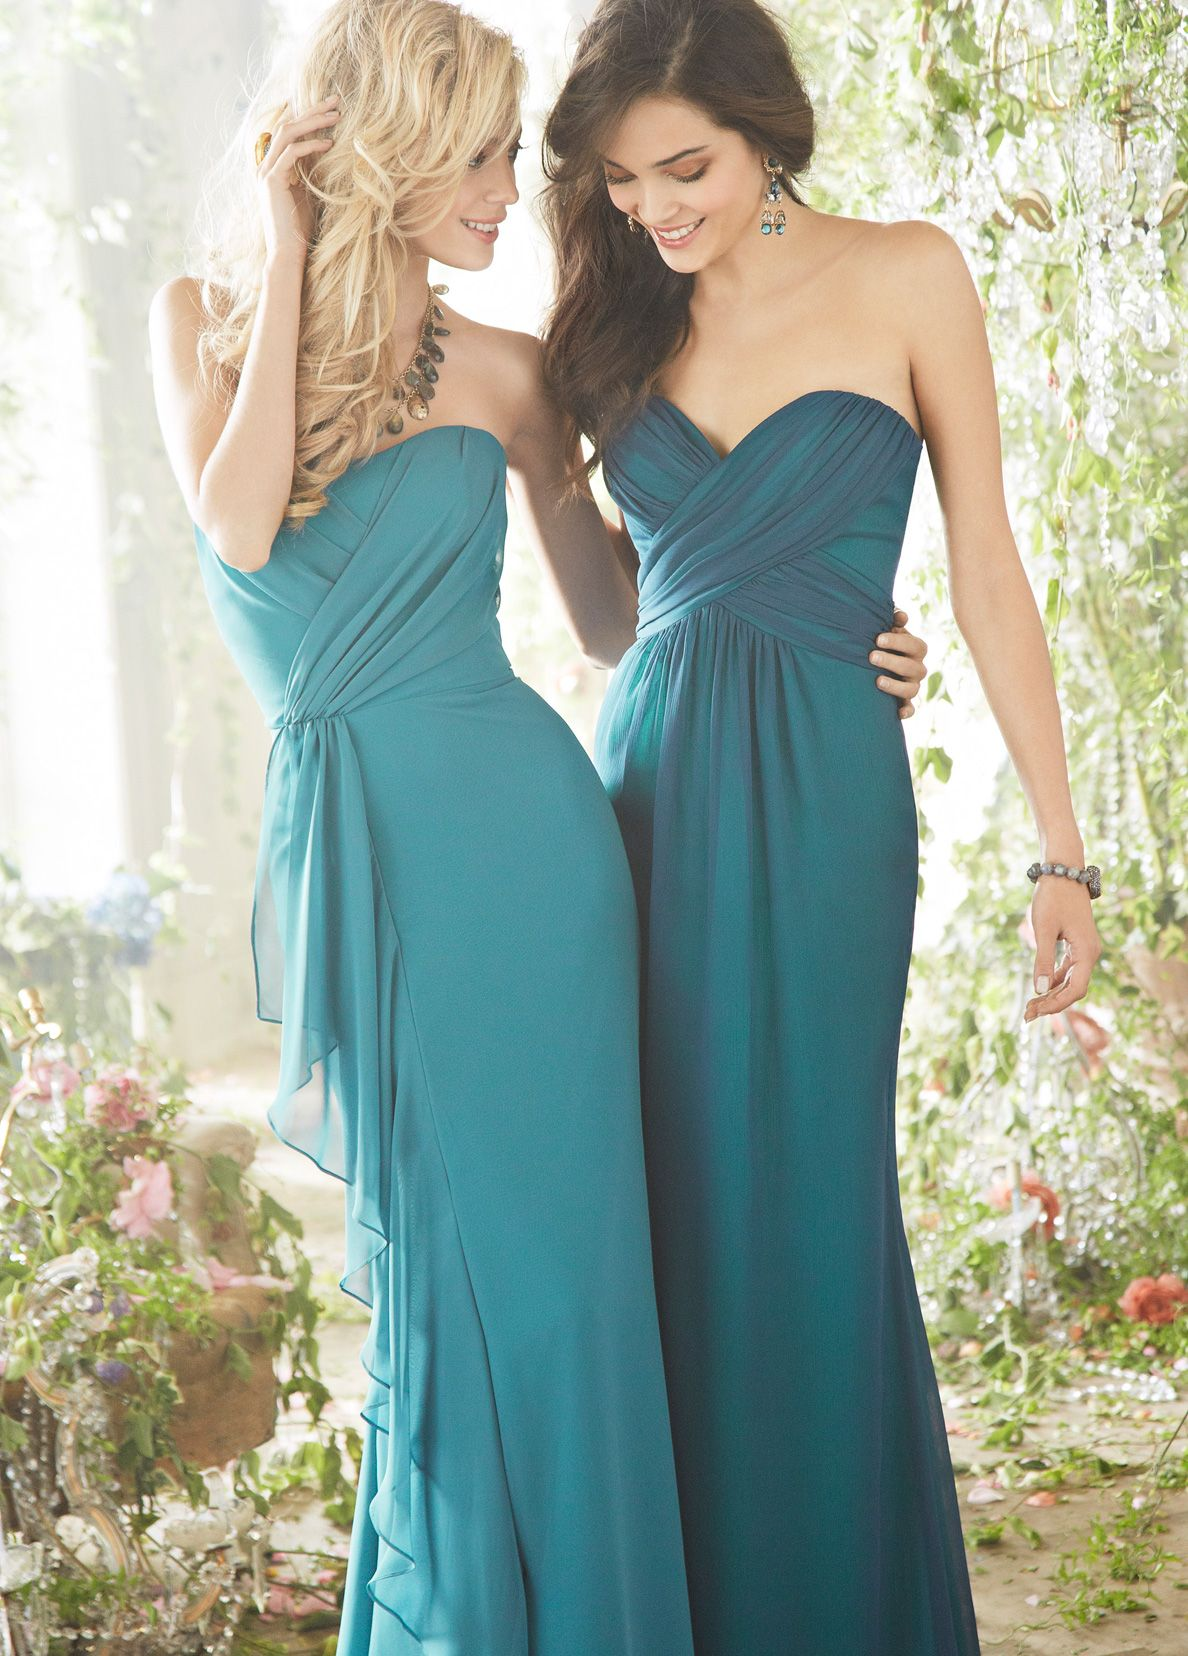 Lovely dresses for a bridesmaid